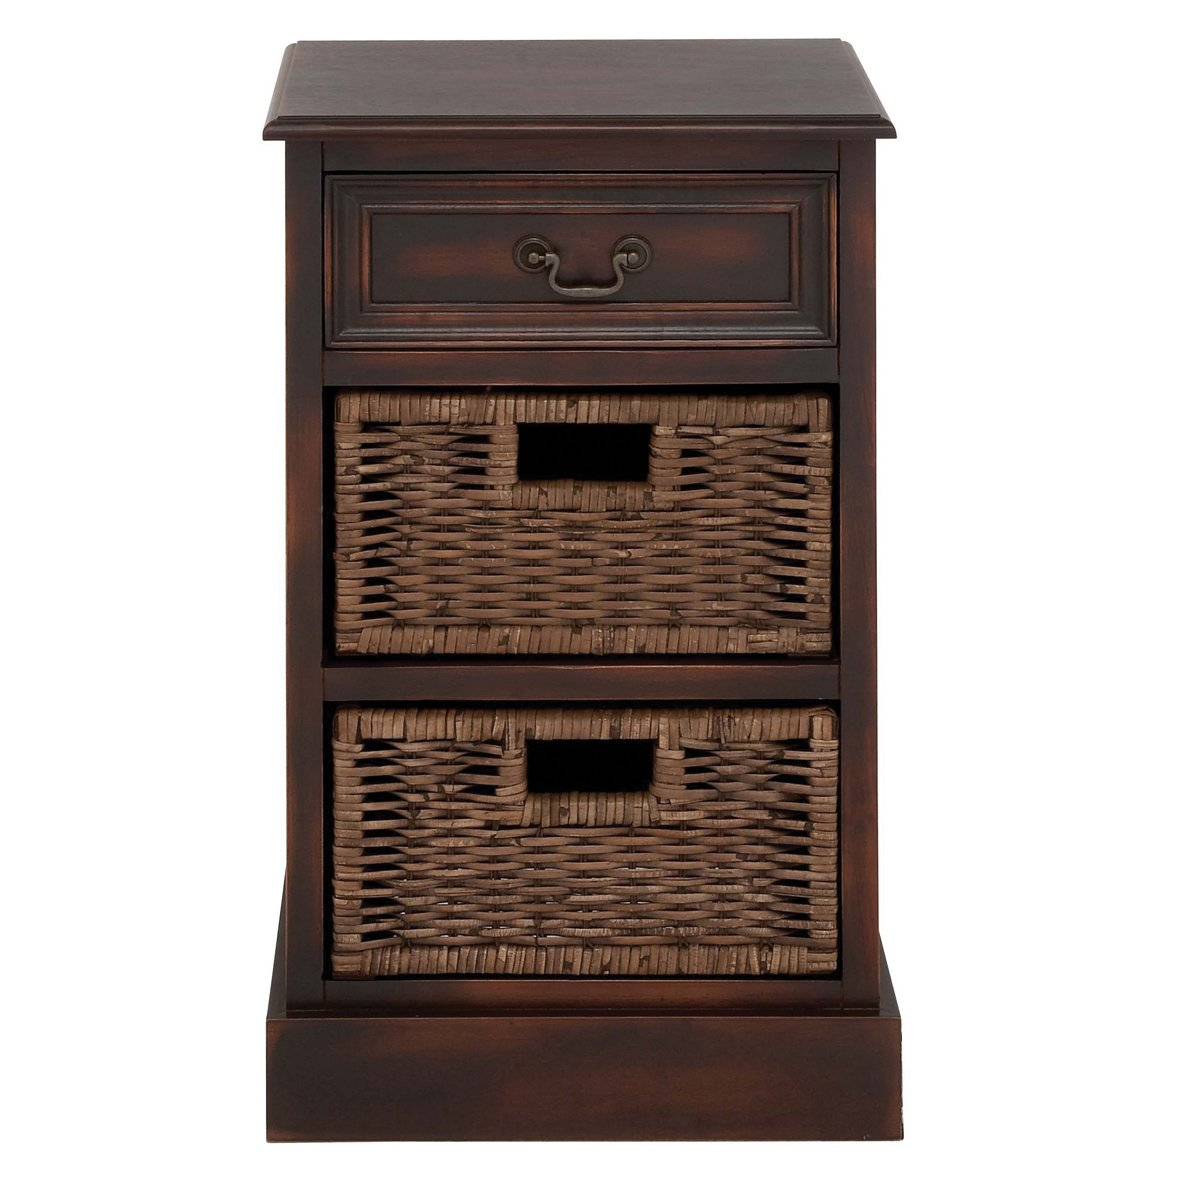 Charmant Amazon.com   Urban Designs 3 Drawer Wooden Storage Chest Night Stand With  Wicker Baskets